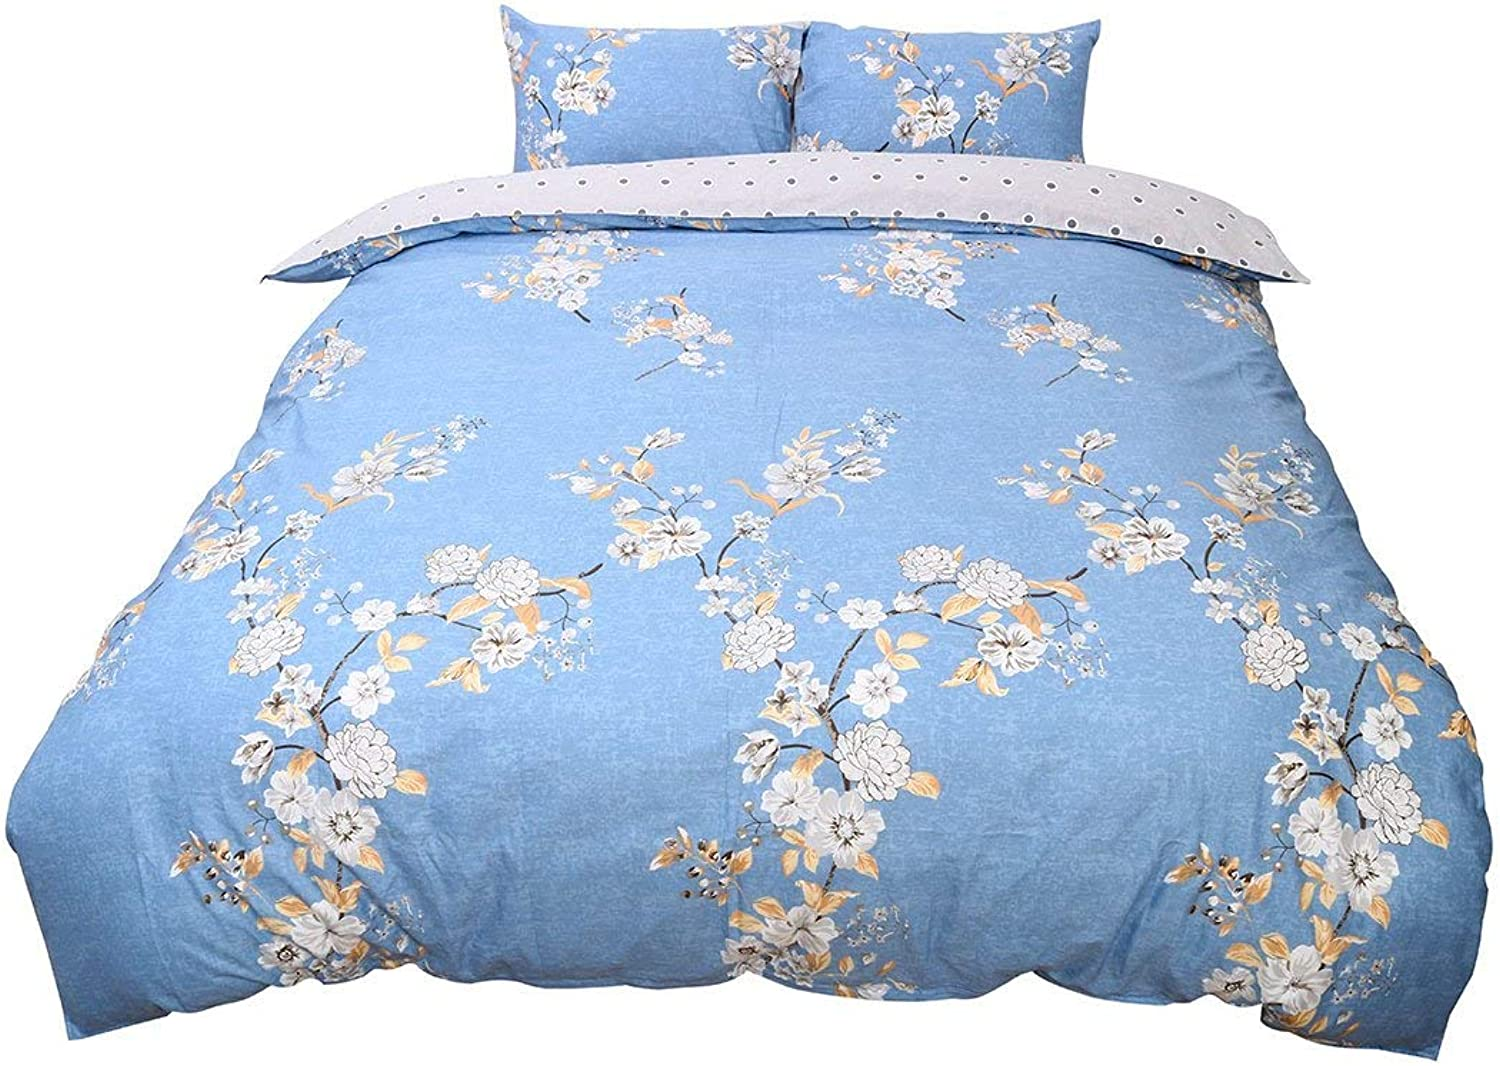 Twin Size, Flower 4   100% Cotton Duvet Cover Set-3 Piece high qualitly Duvet Covers and Pillowcases Bedding Sets(Twin Size, Flower 4)